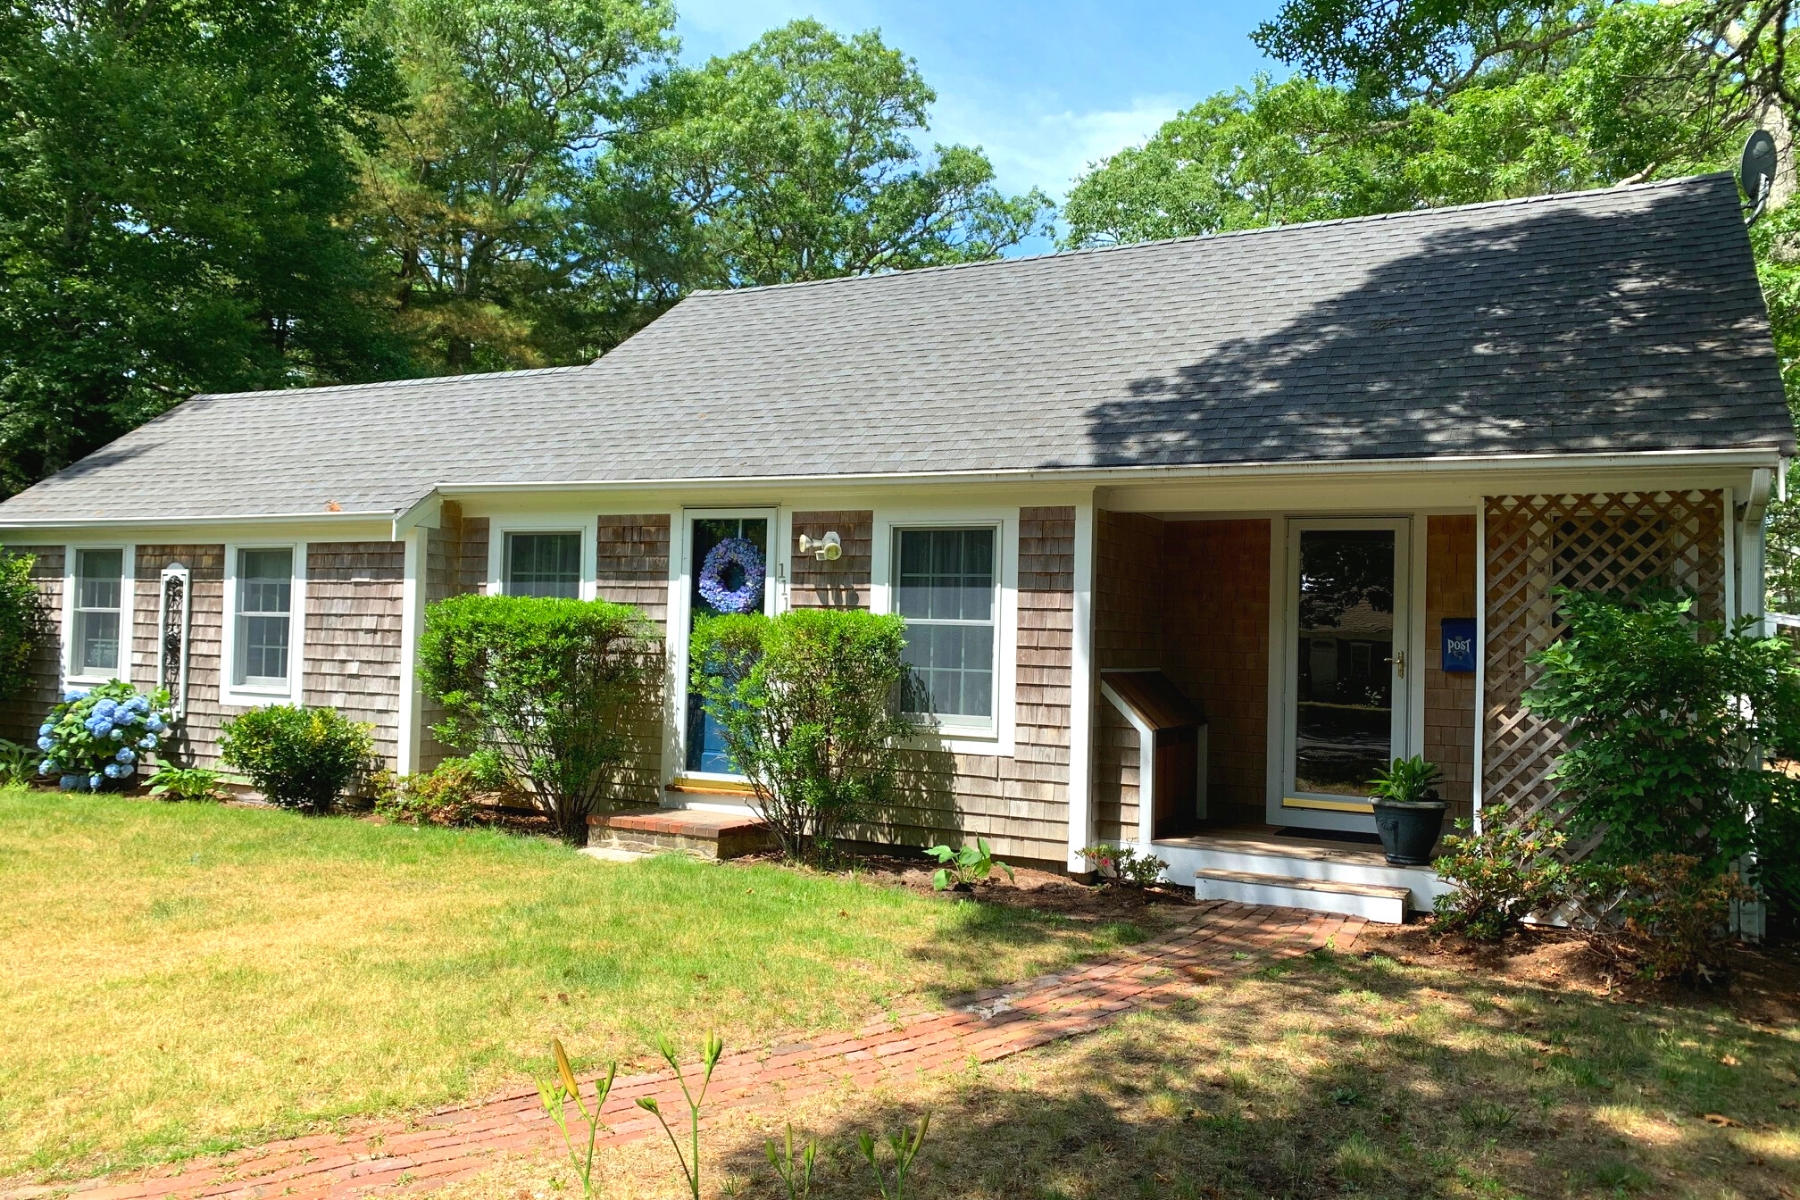 111 Main Street, South Yarmouth MA, 02664 details